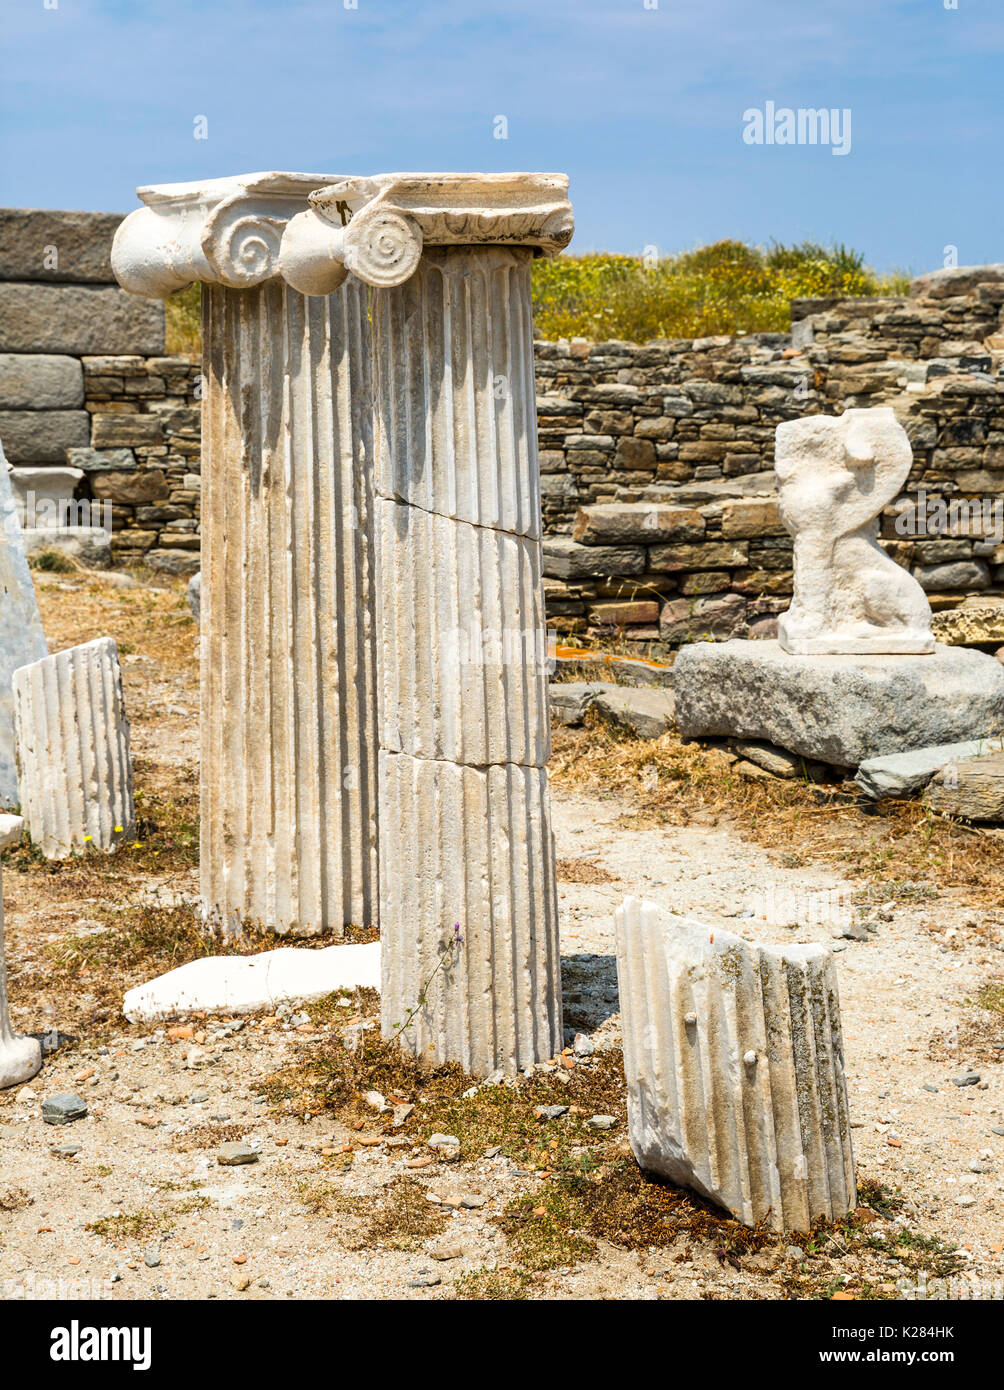 Ancient Greek Ionic fluted columns, Delos ruins, Greece. - Stock Image